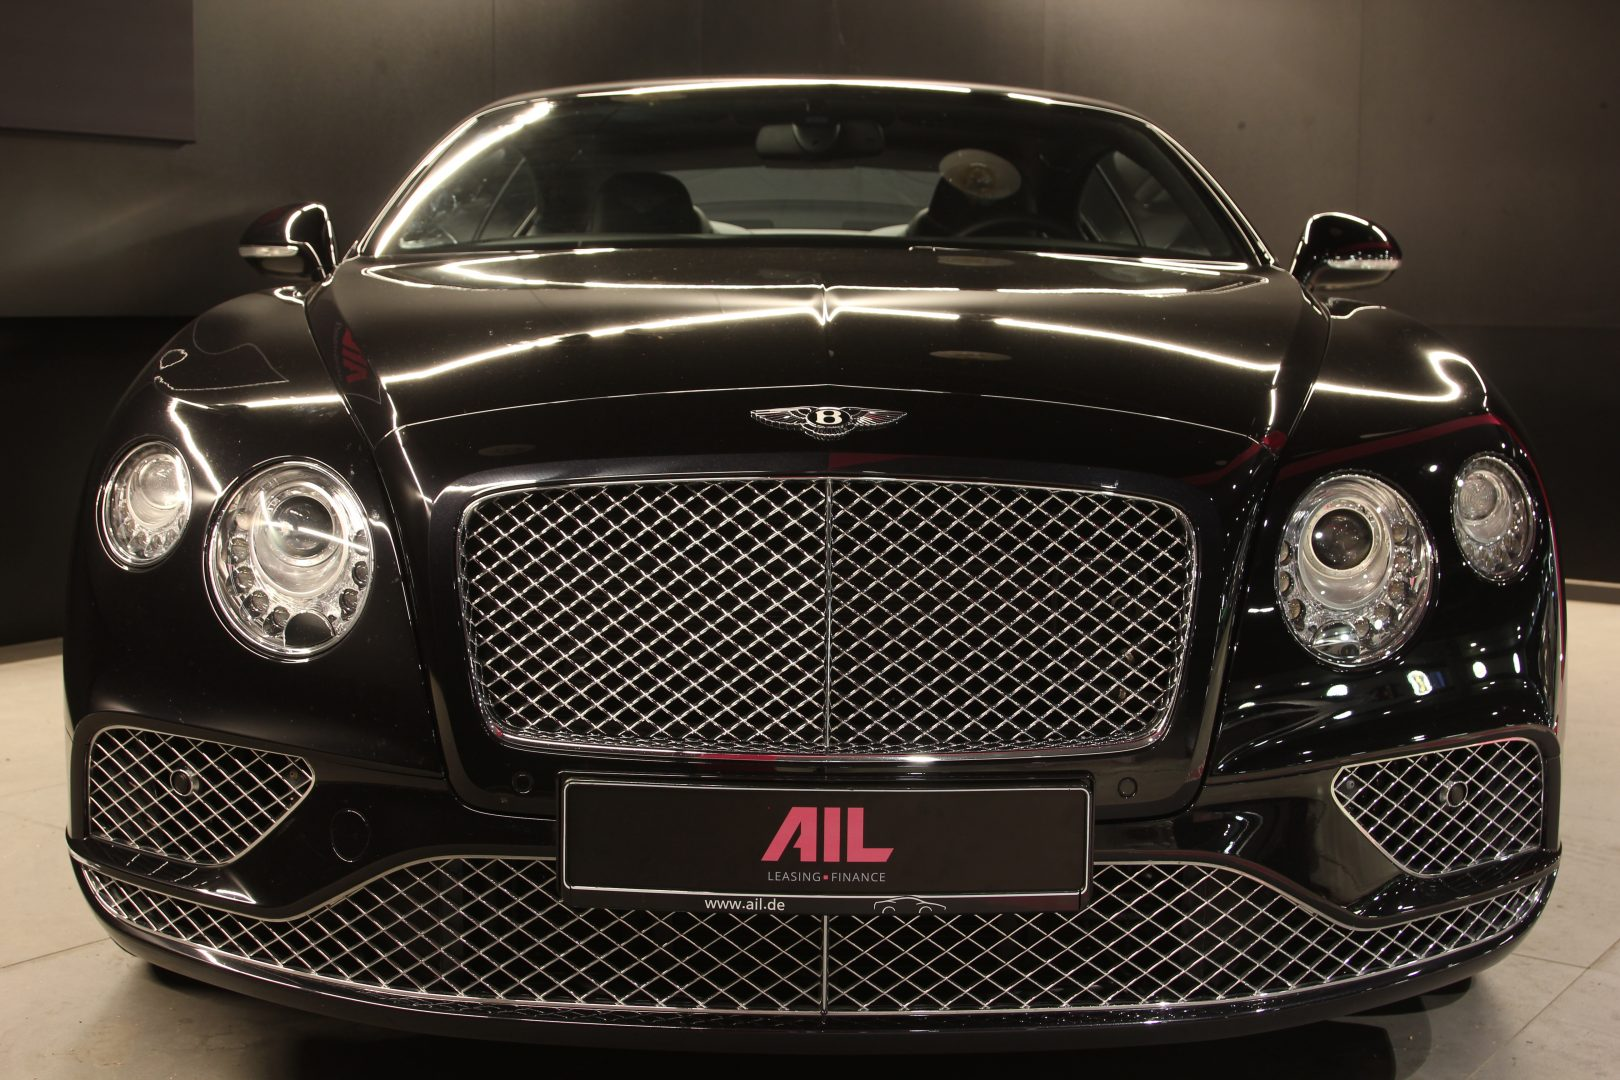 AIL Bentley Continental GT W12 7